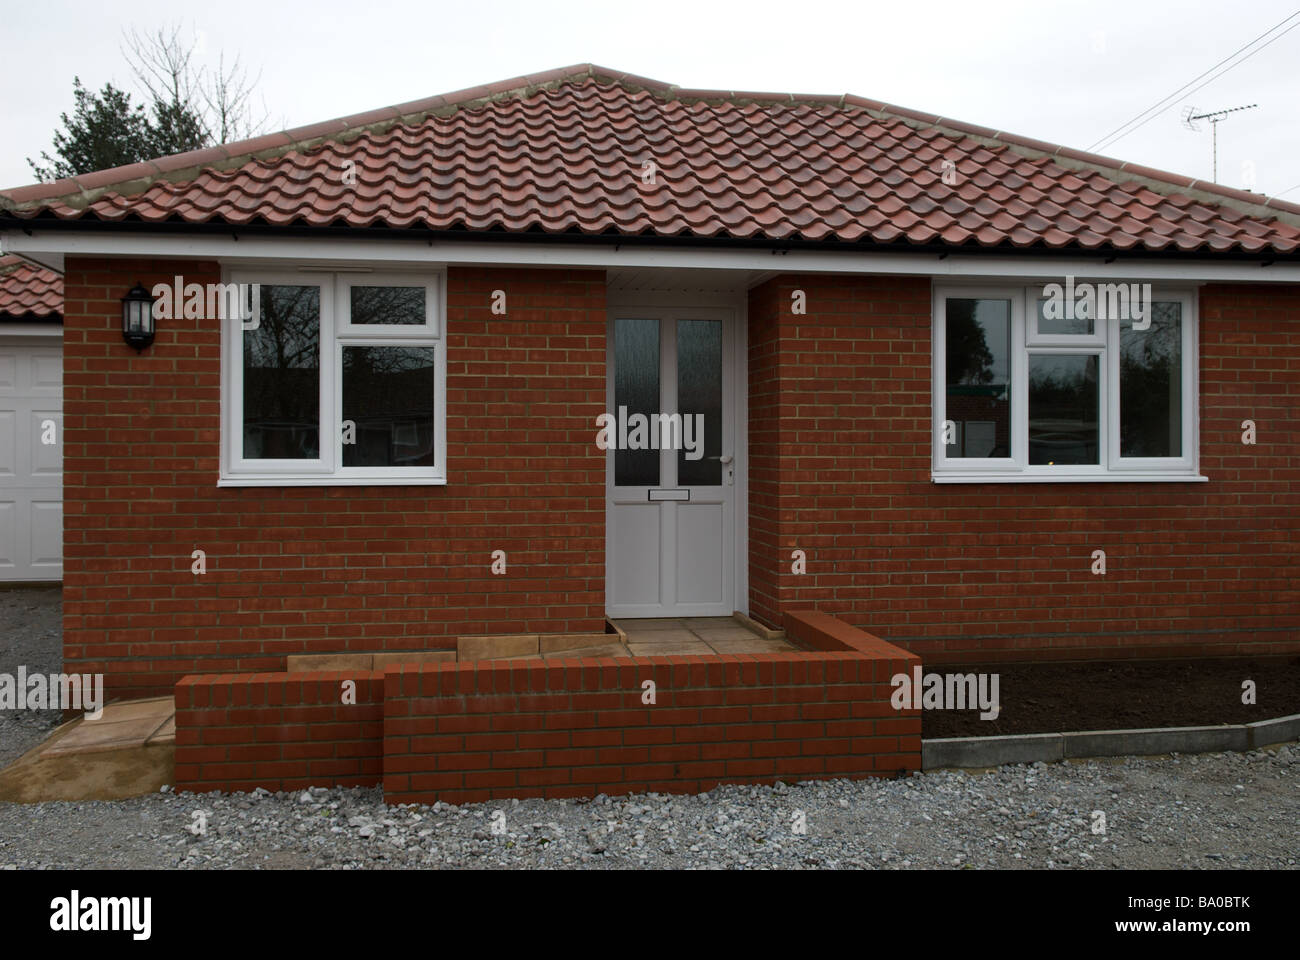 Suffolk Bungalows For Sale Part - 15: Newly Built Bungalow For Sale Which In The Village Of Hollesley, Suffolk,  UK.